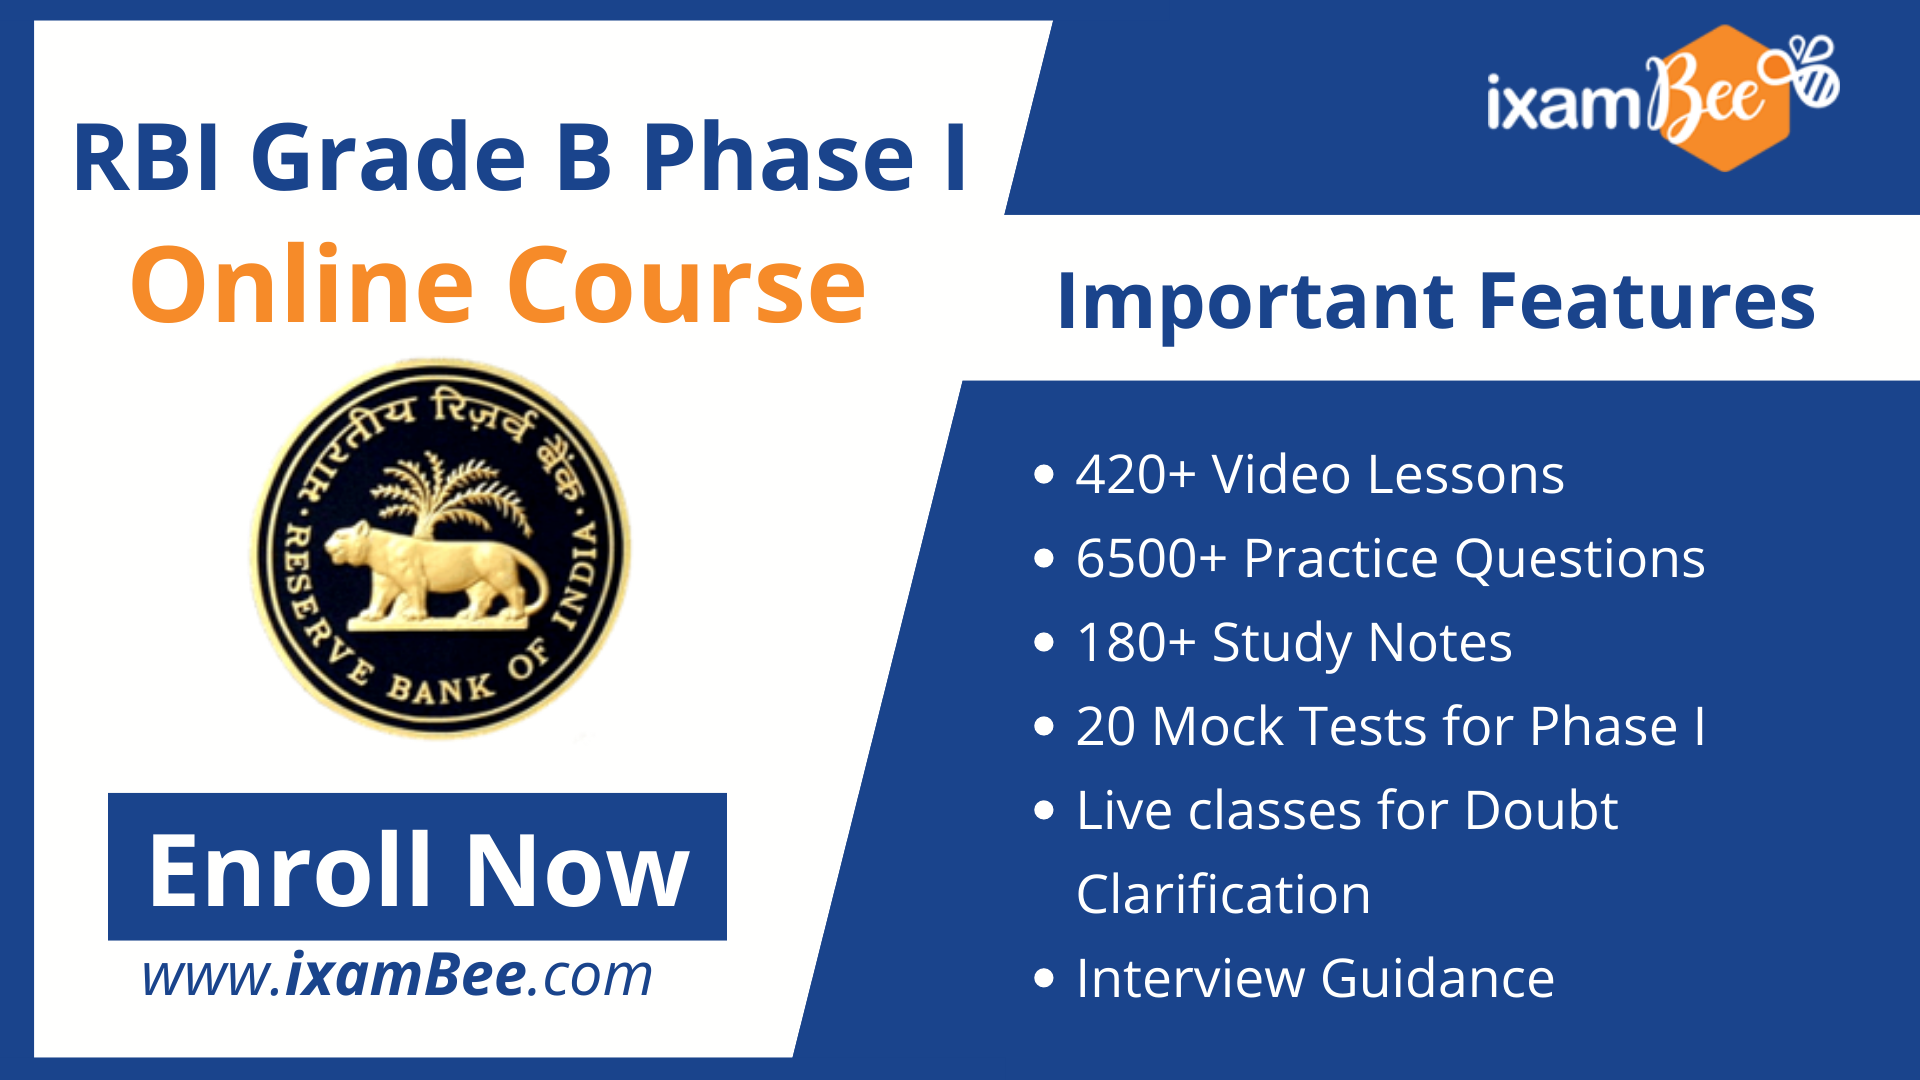 rbi grade b phase I online course